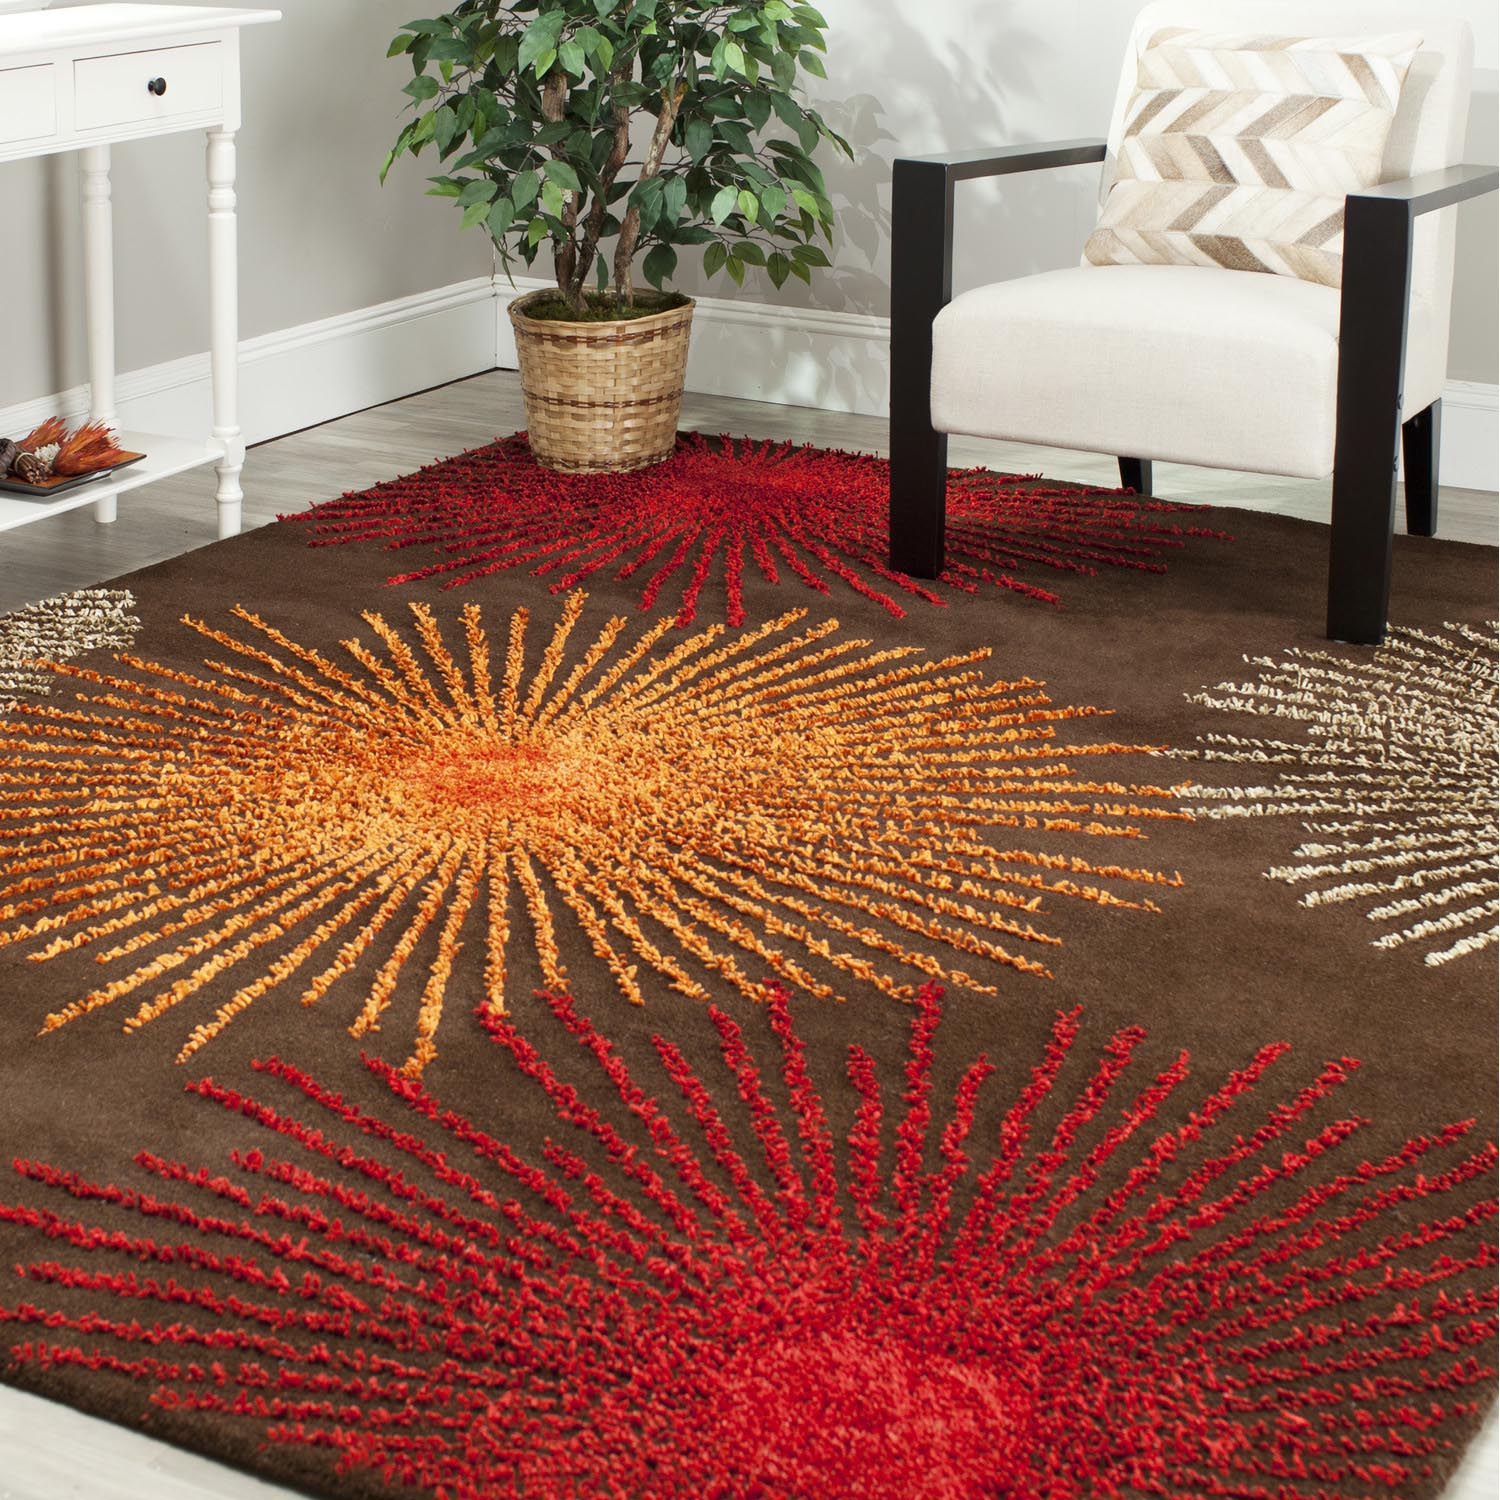 Orange and Brown Area Rug